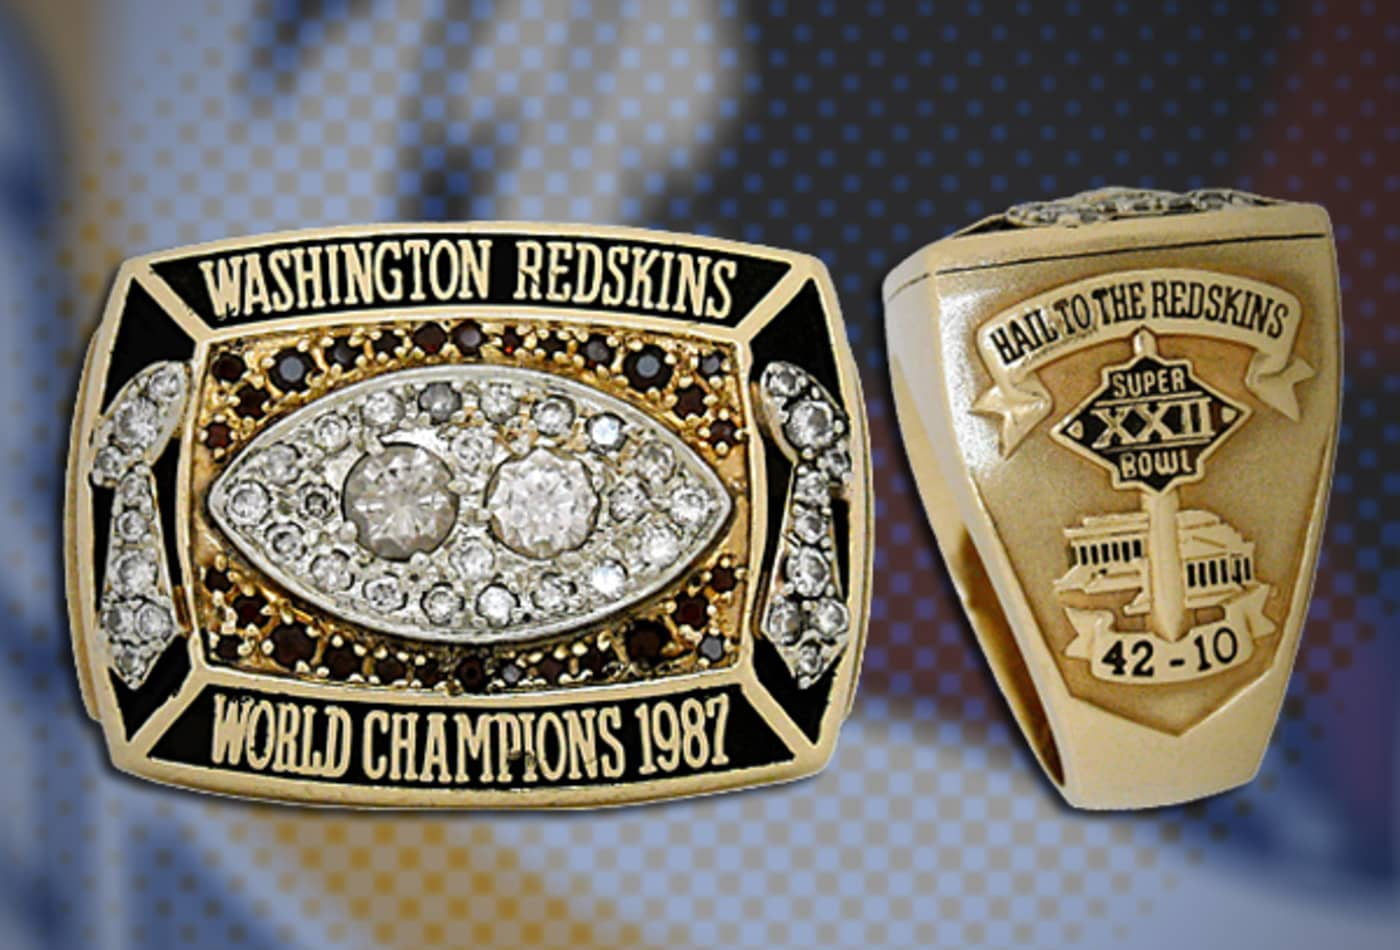 superbowl-rings-1987-washington-redskins.jpg